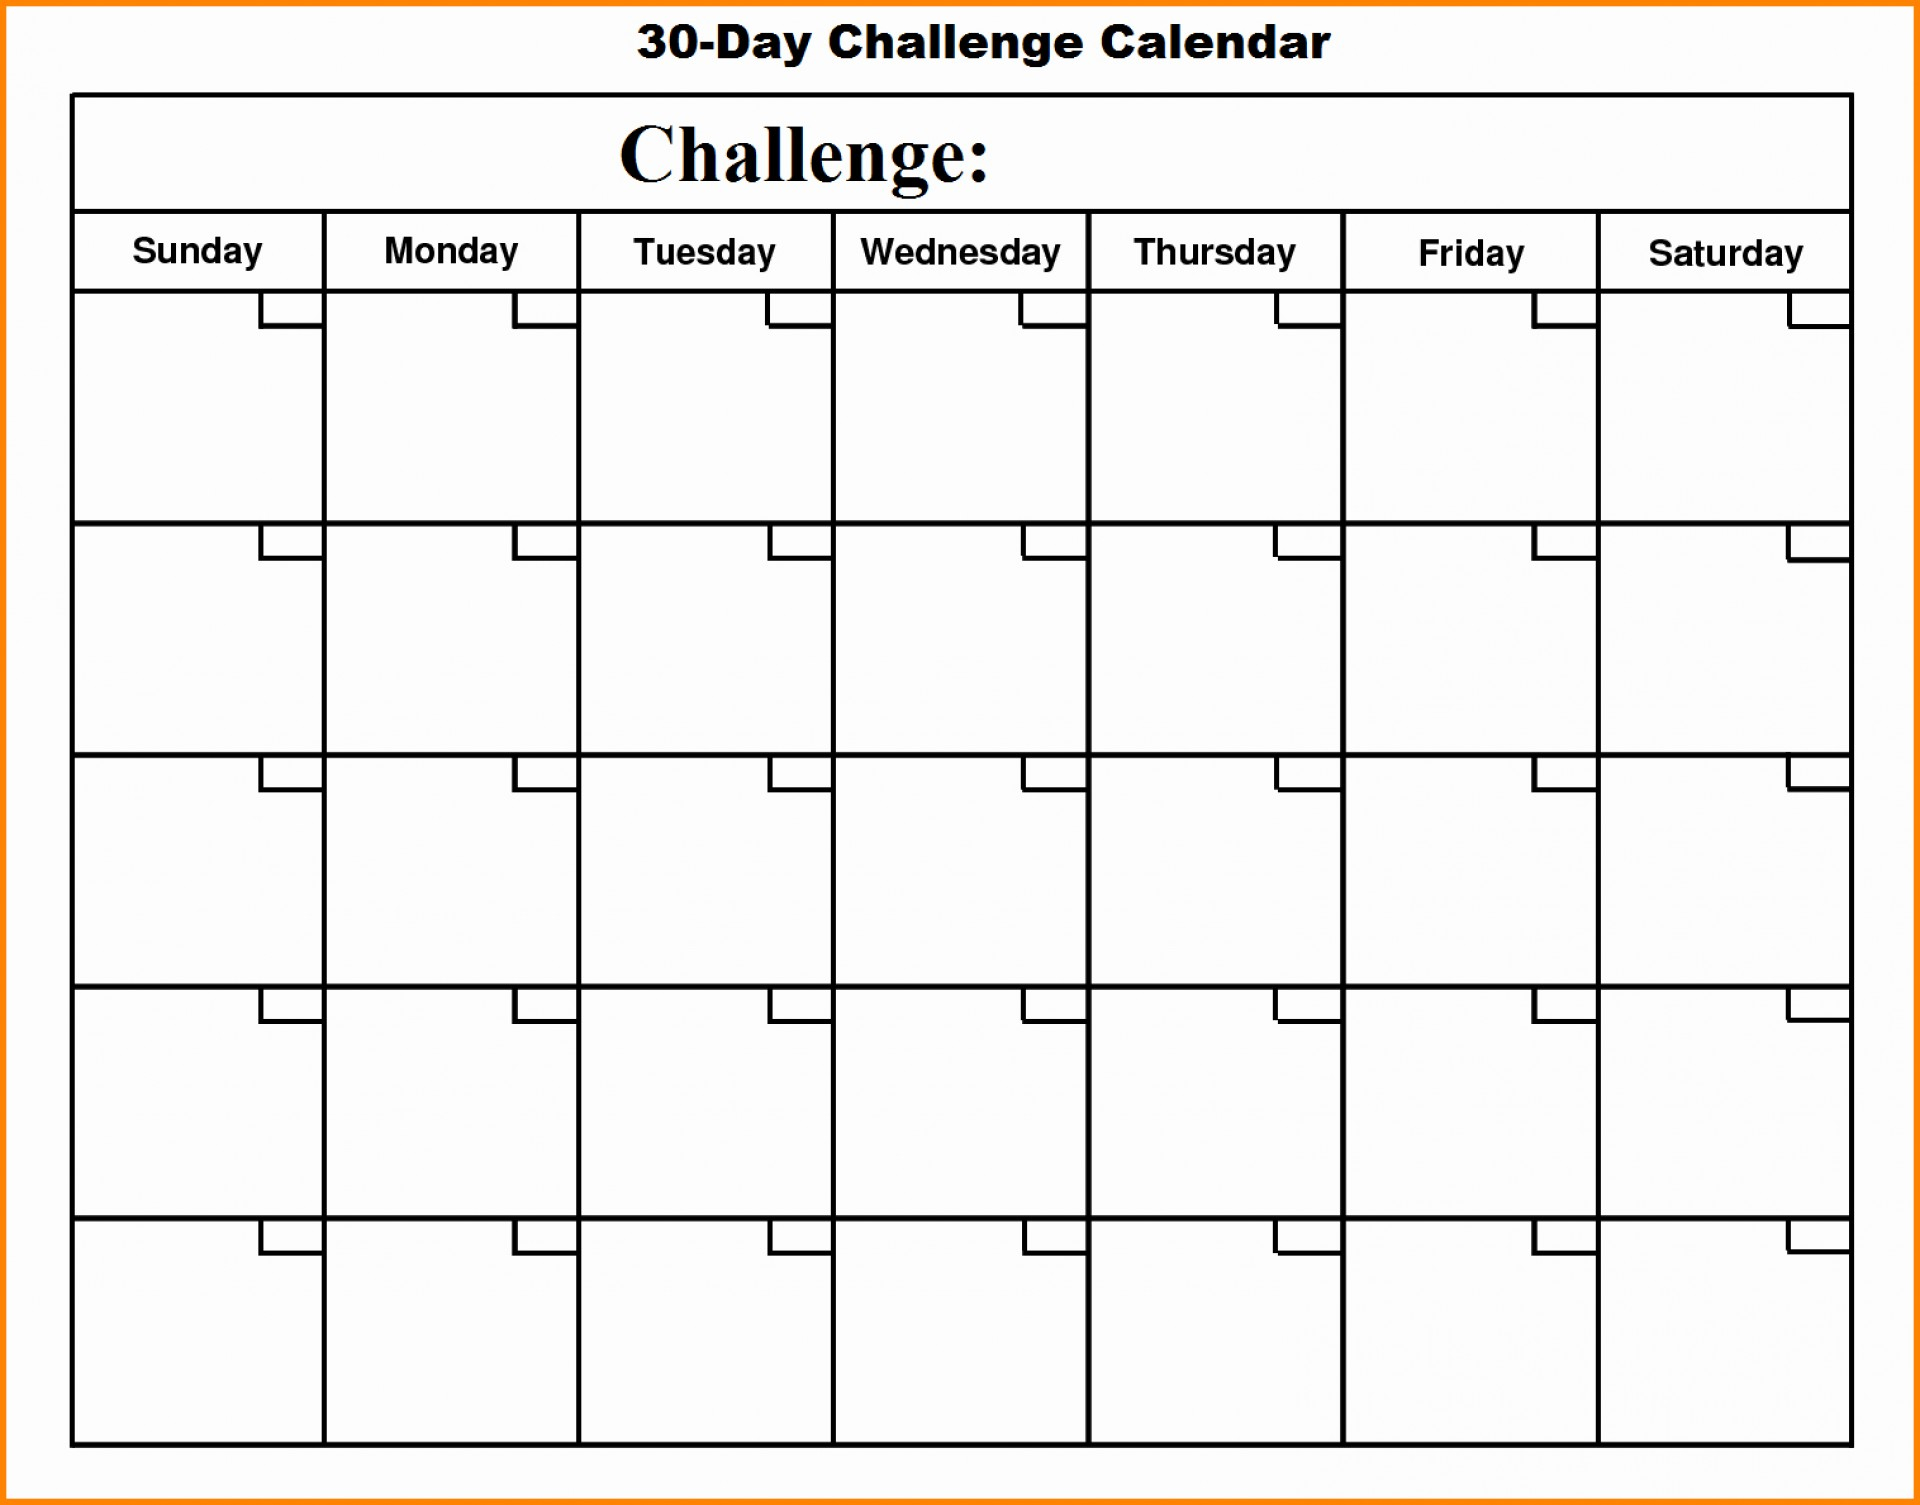 001 Template Ideas Day Dreaded 30 Calendar Pdf Challenge throughout 30 Day Calander